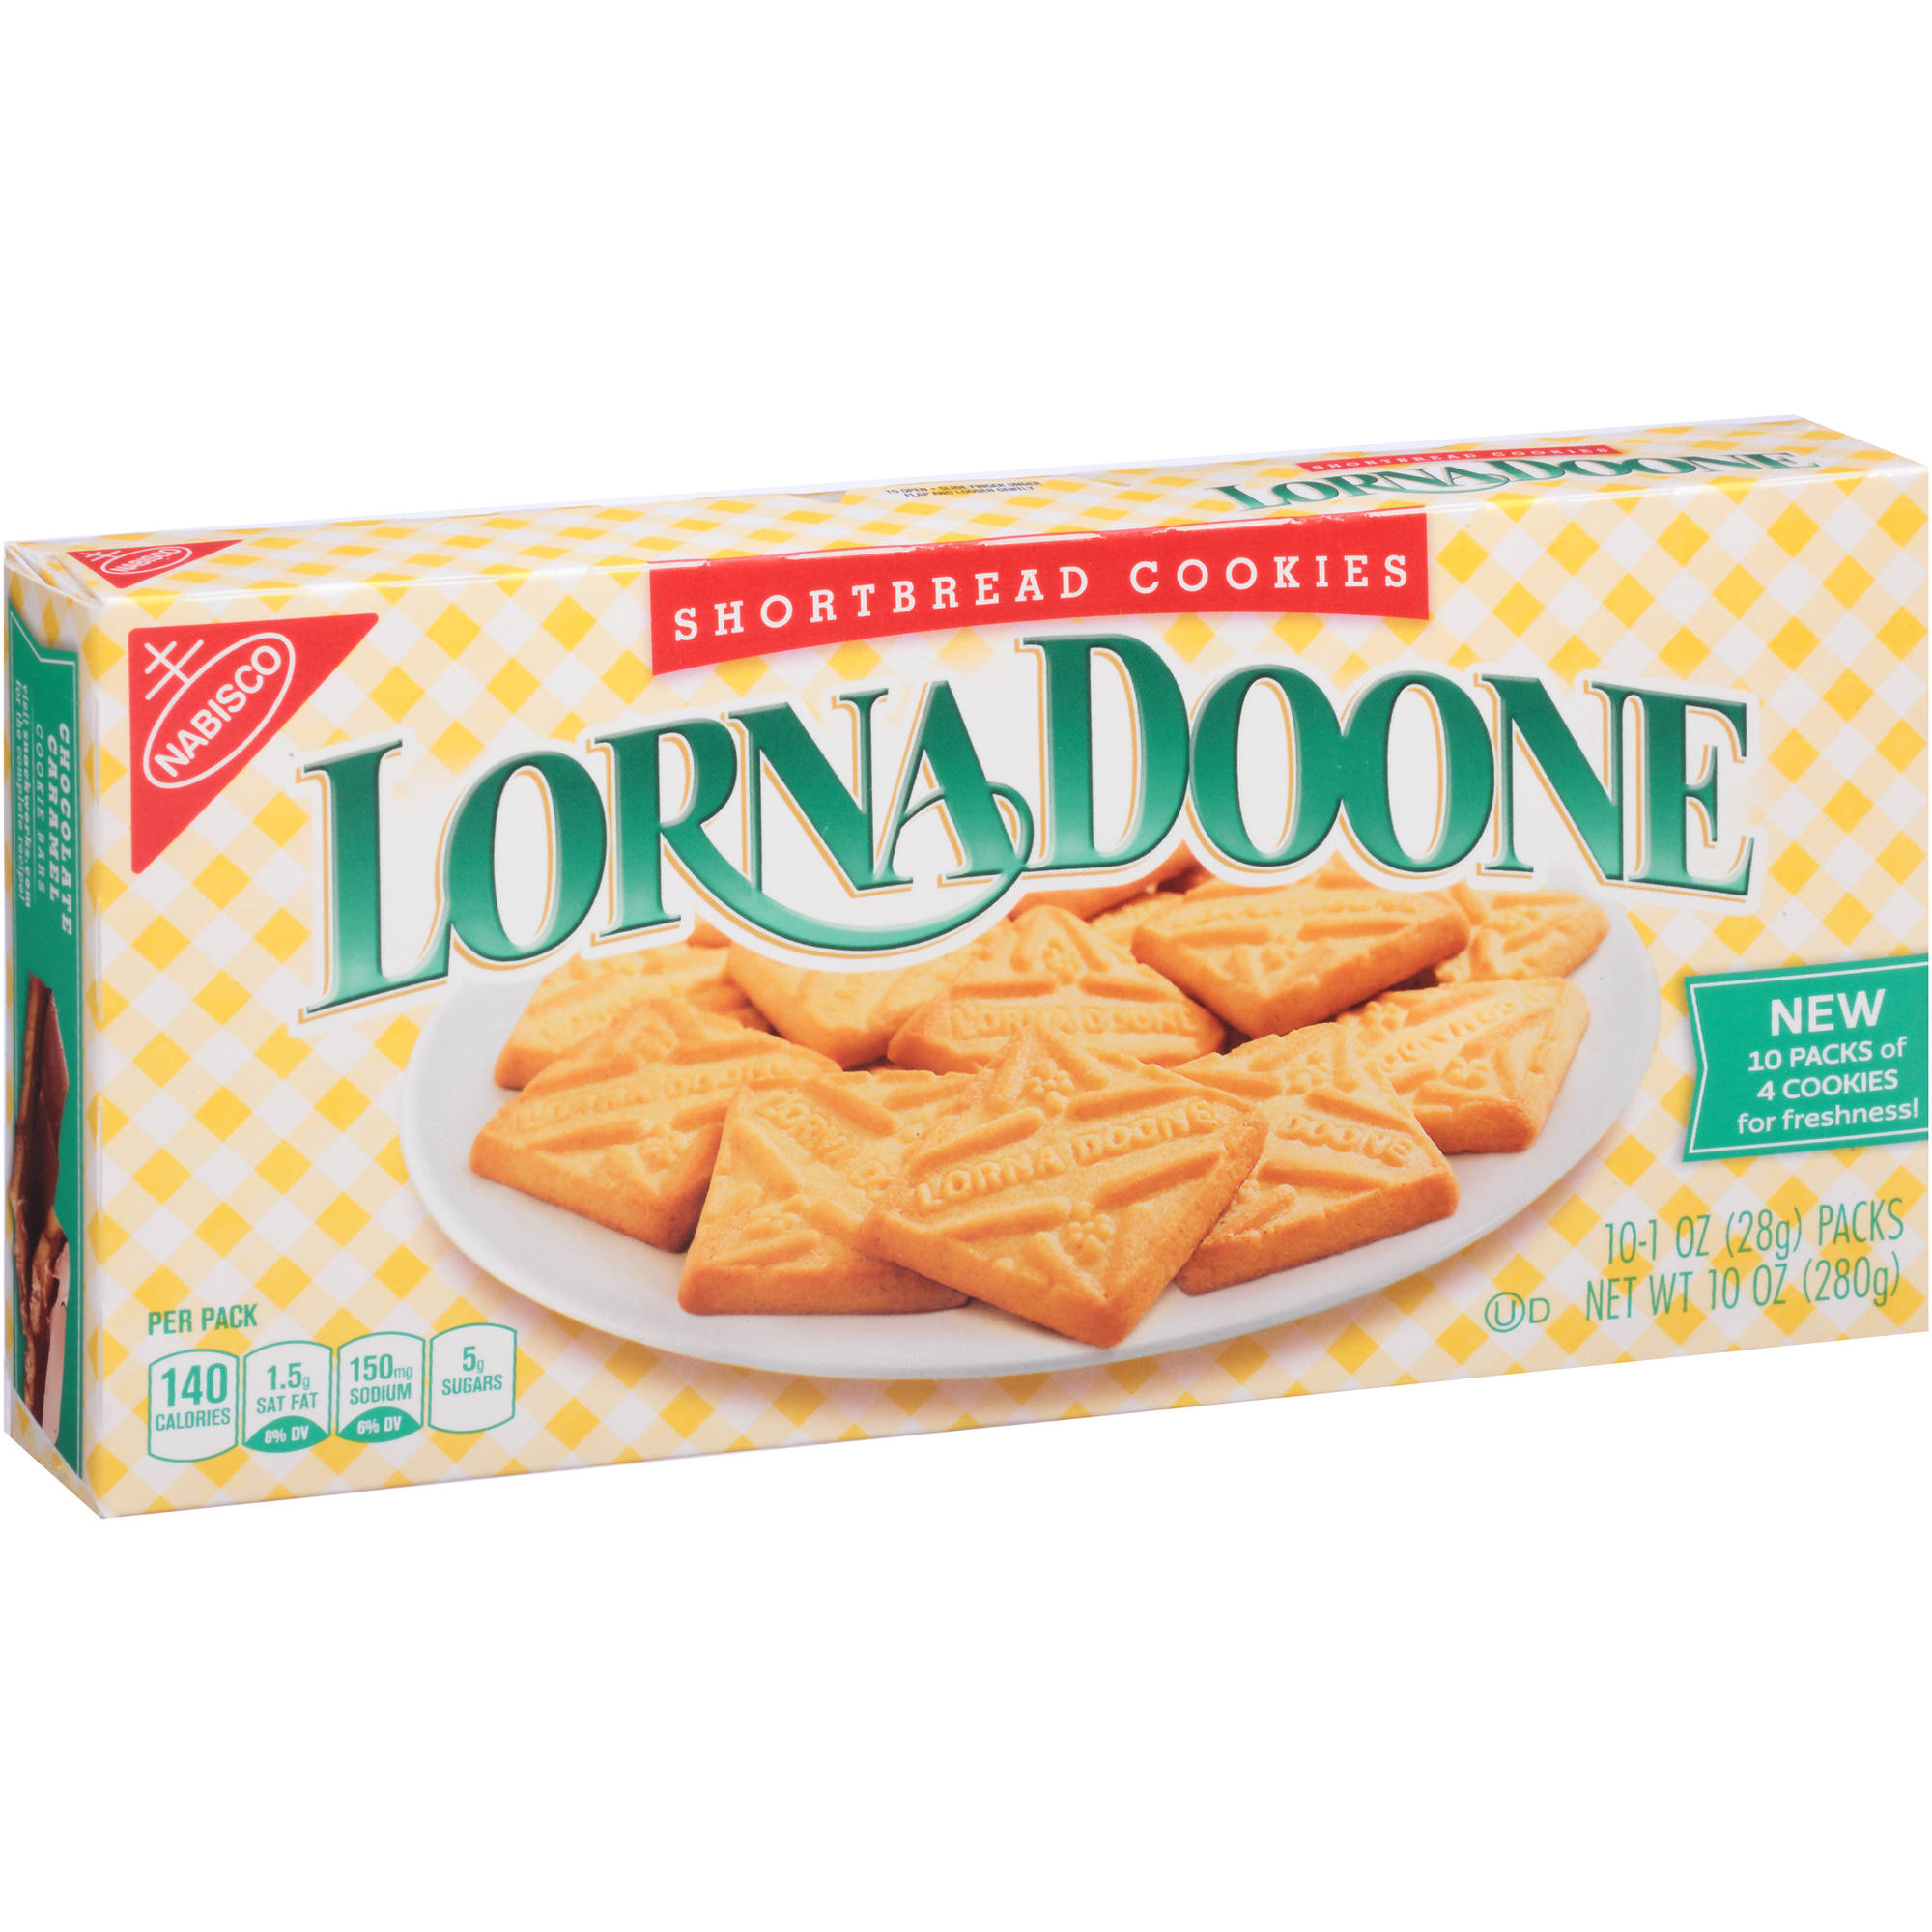 Nabisco Lorna Doone Shortbread Cookies, 1 oz, 10 count